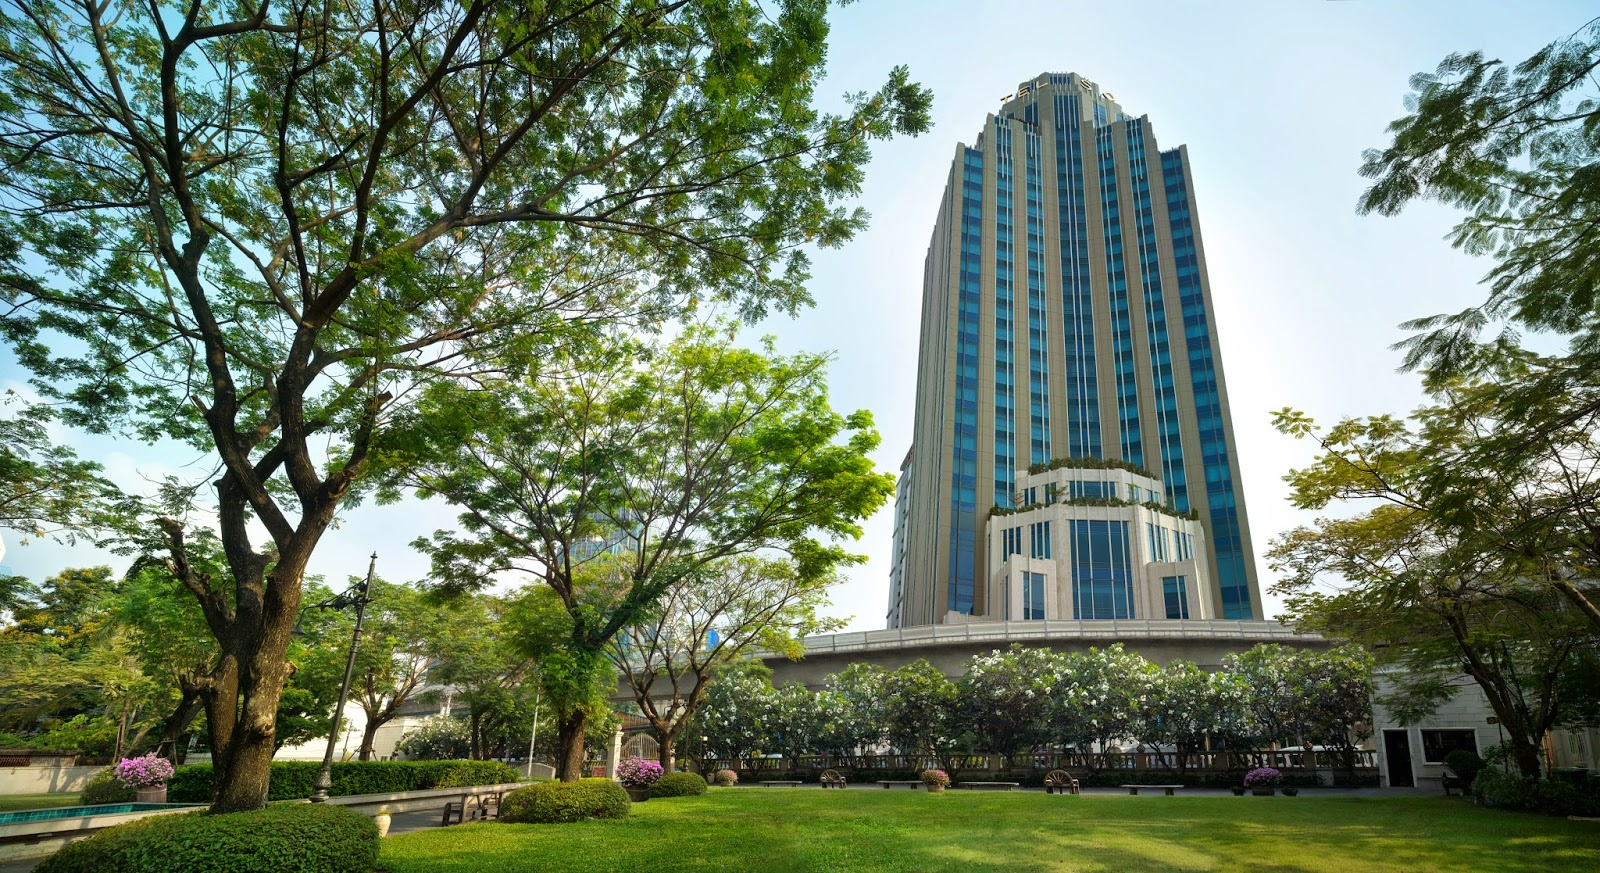 Sofitel Bangkok Sukhumvit stands out in a district that is home to little surprises, off-the-radar experiences.